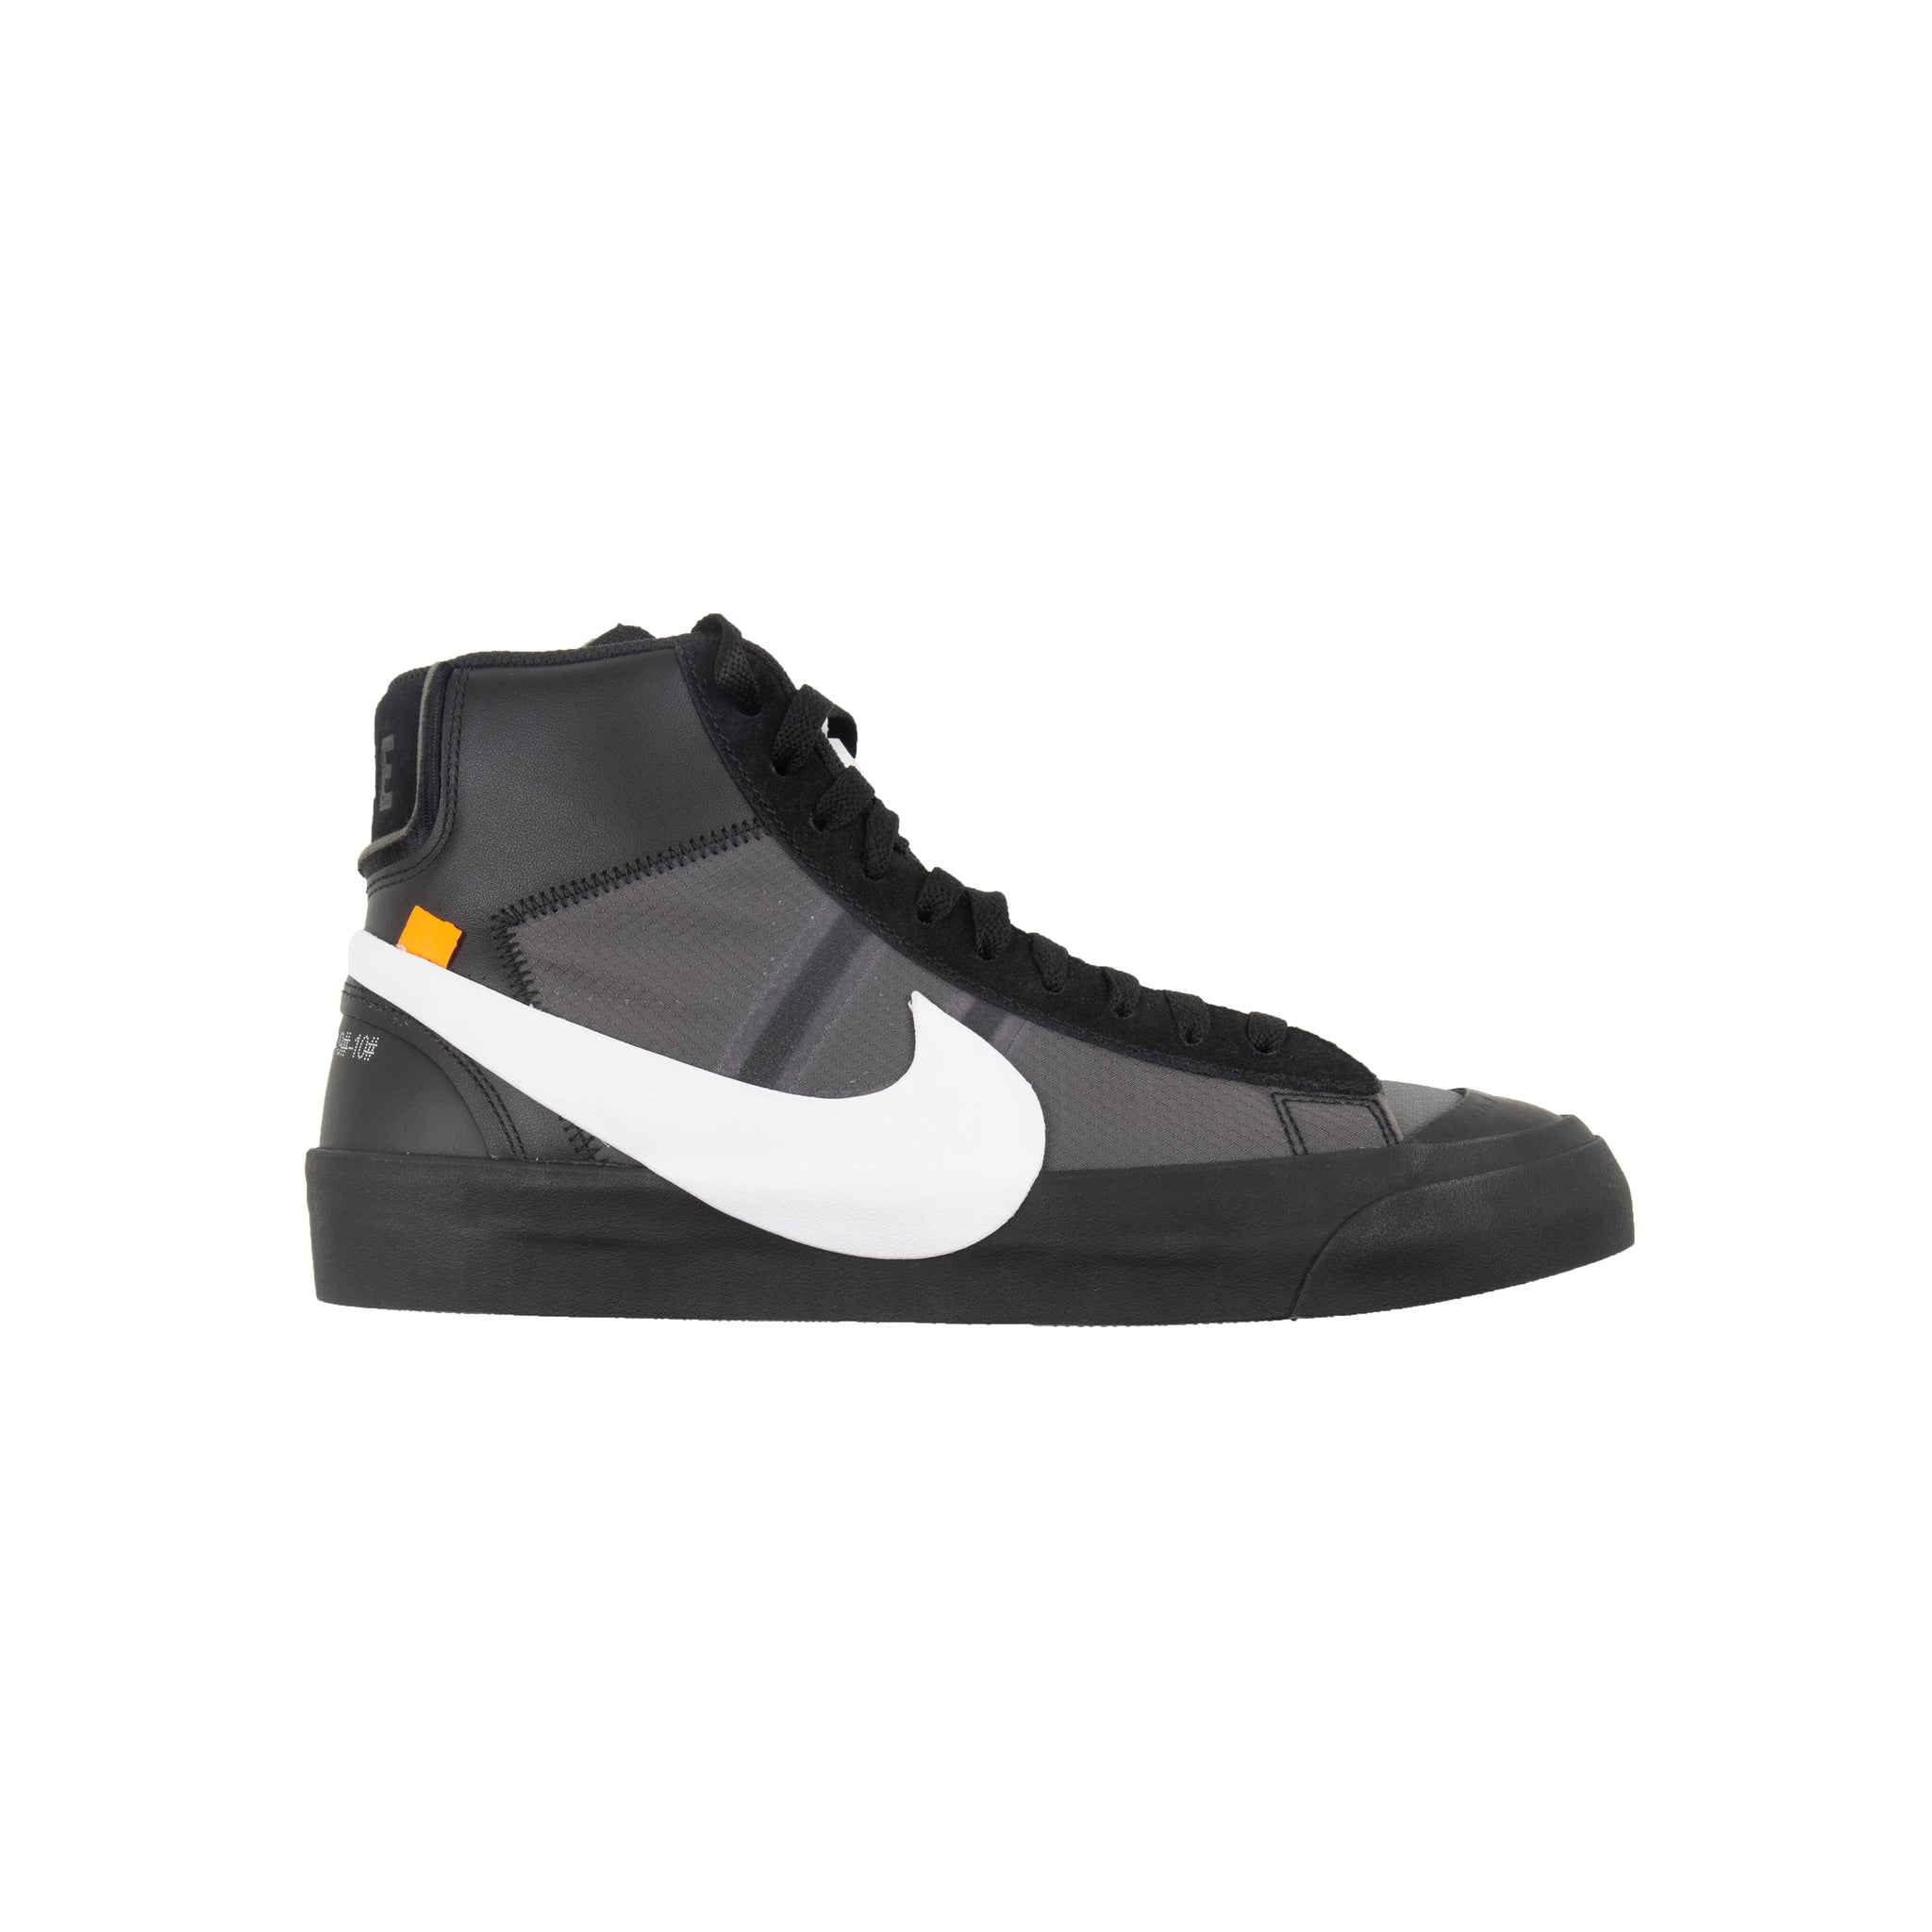 Nike Black Off-White Blazer